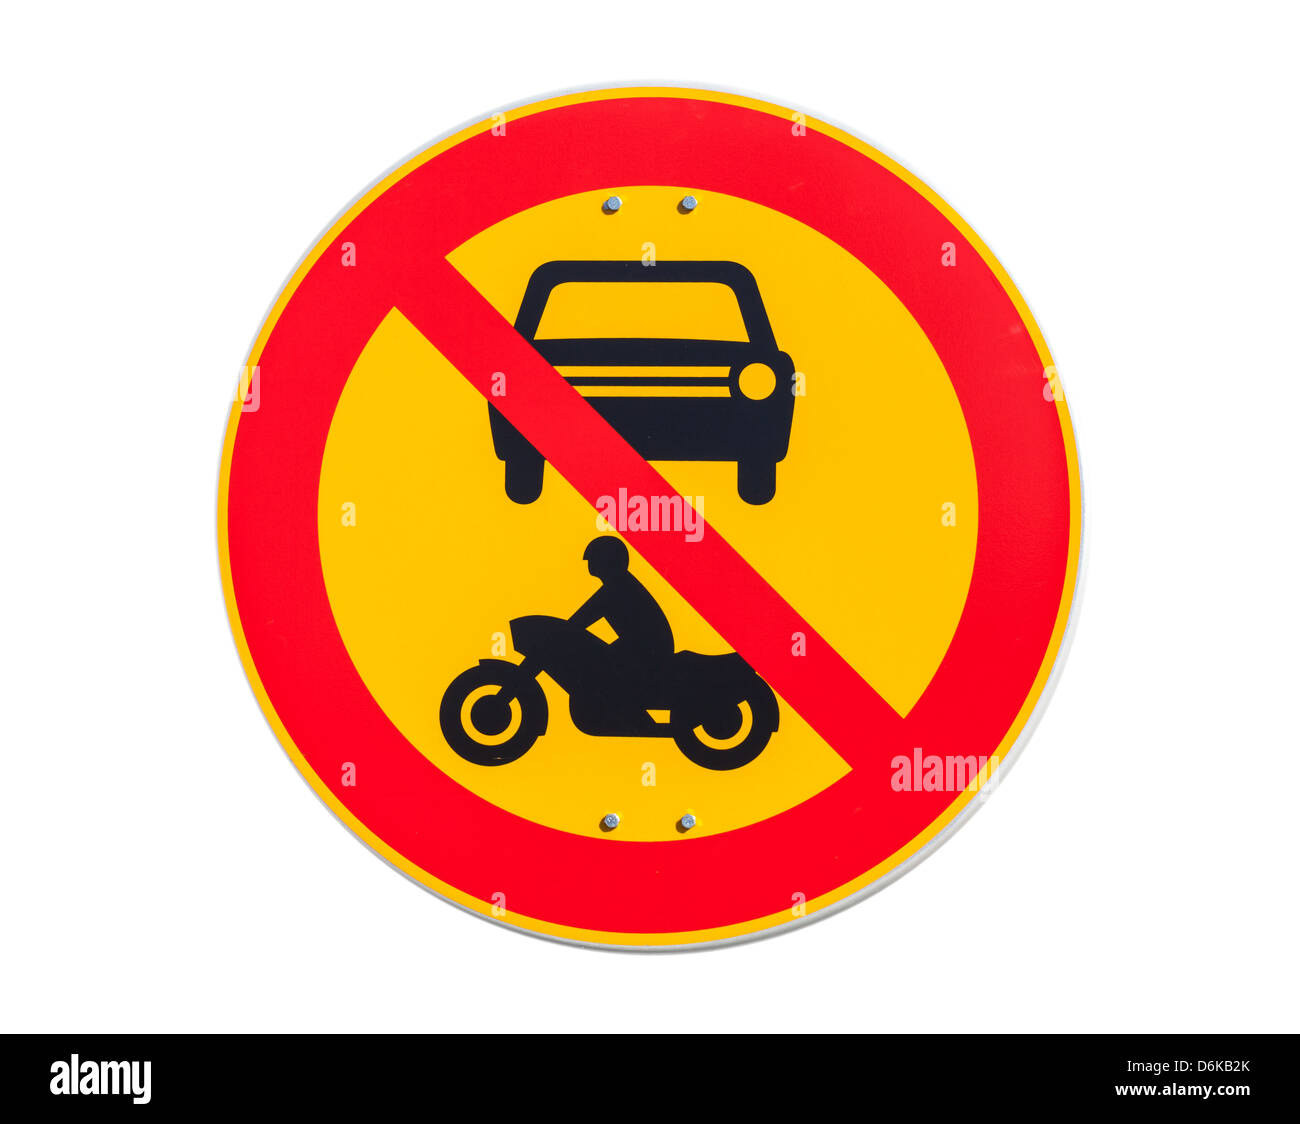 European round traffic sign, the passage of vehicles and motorcycles prohibited - Stock Image